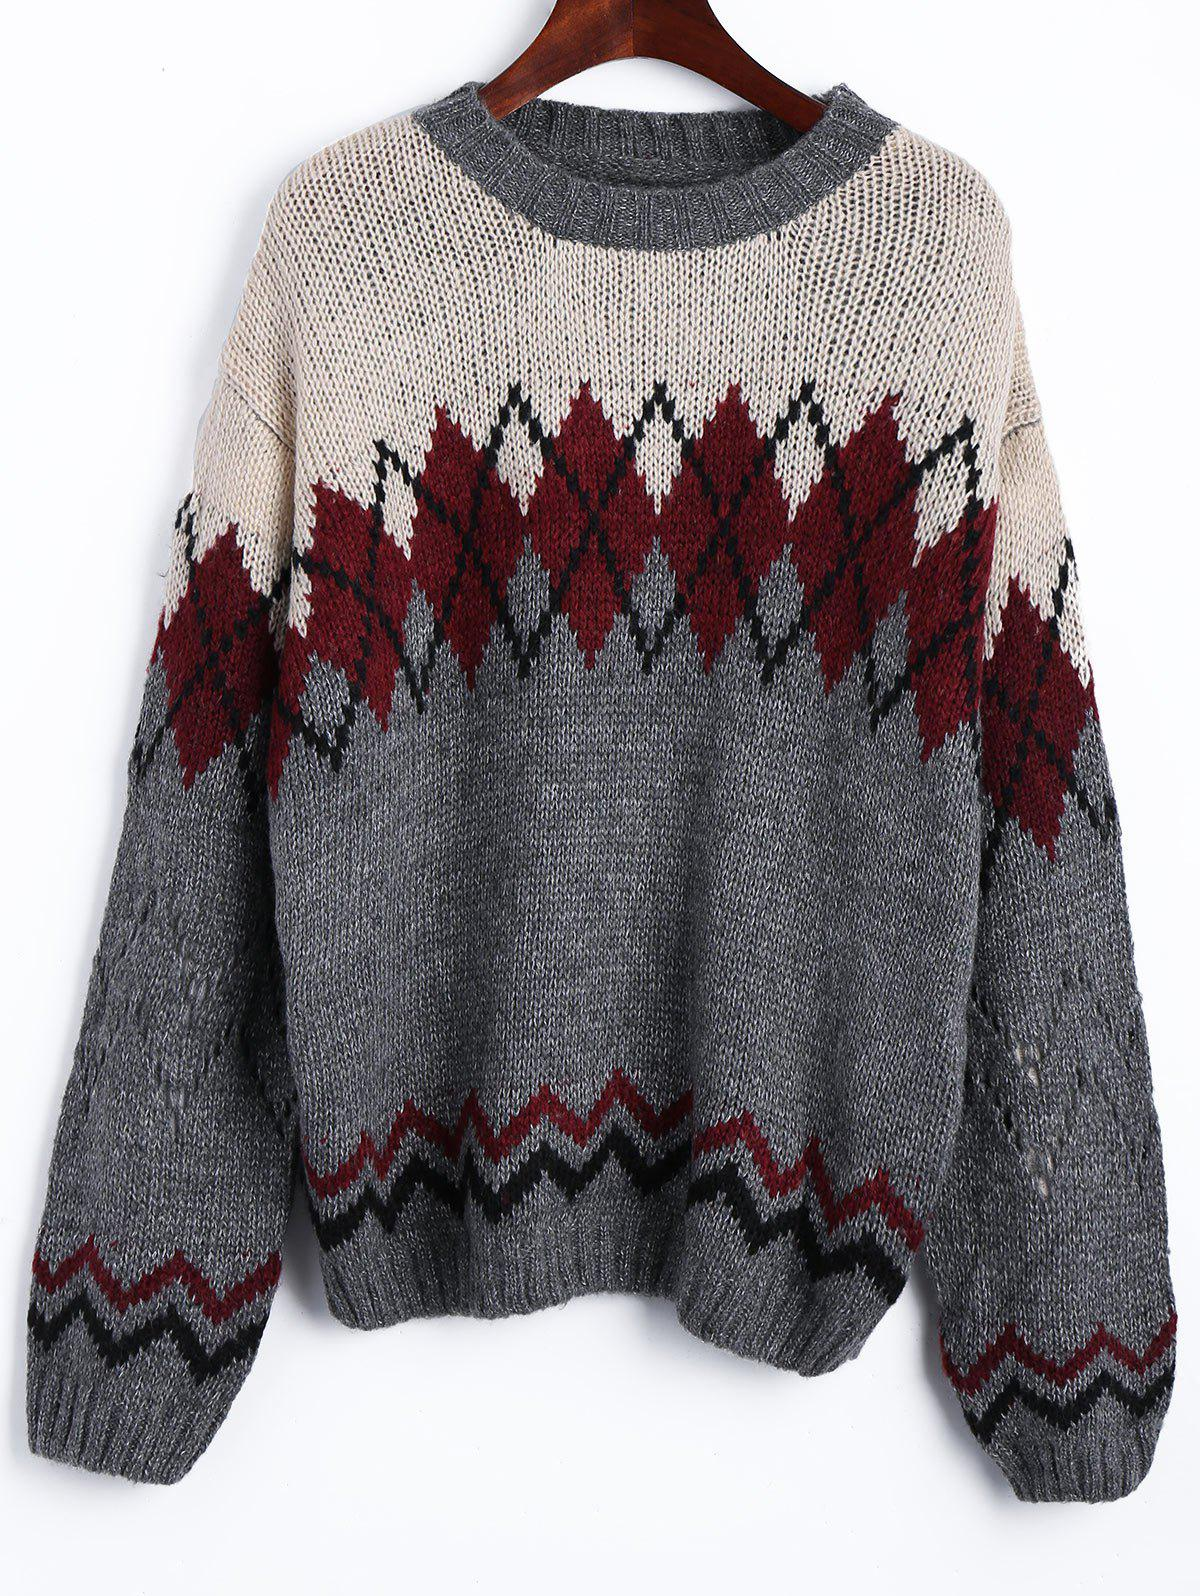 Geometric Jacquard Drop Shoulder SweaterWOMEN<br><br>Size: ONE SIZE; Color: COLORMIX; Type: Pullovers; Material: Acrylic,Polyester; Sleeve Length: Full; Collar: Crew Neck; Style: Casual; Pattern Type: Geometric; Season: Fall,Spring; Weight: 0.5150kg; Package Contents: 1 x Sweater;